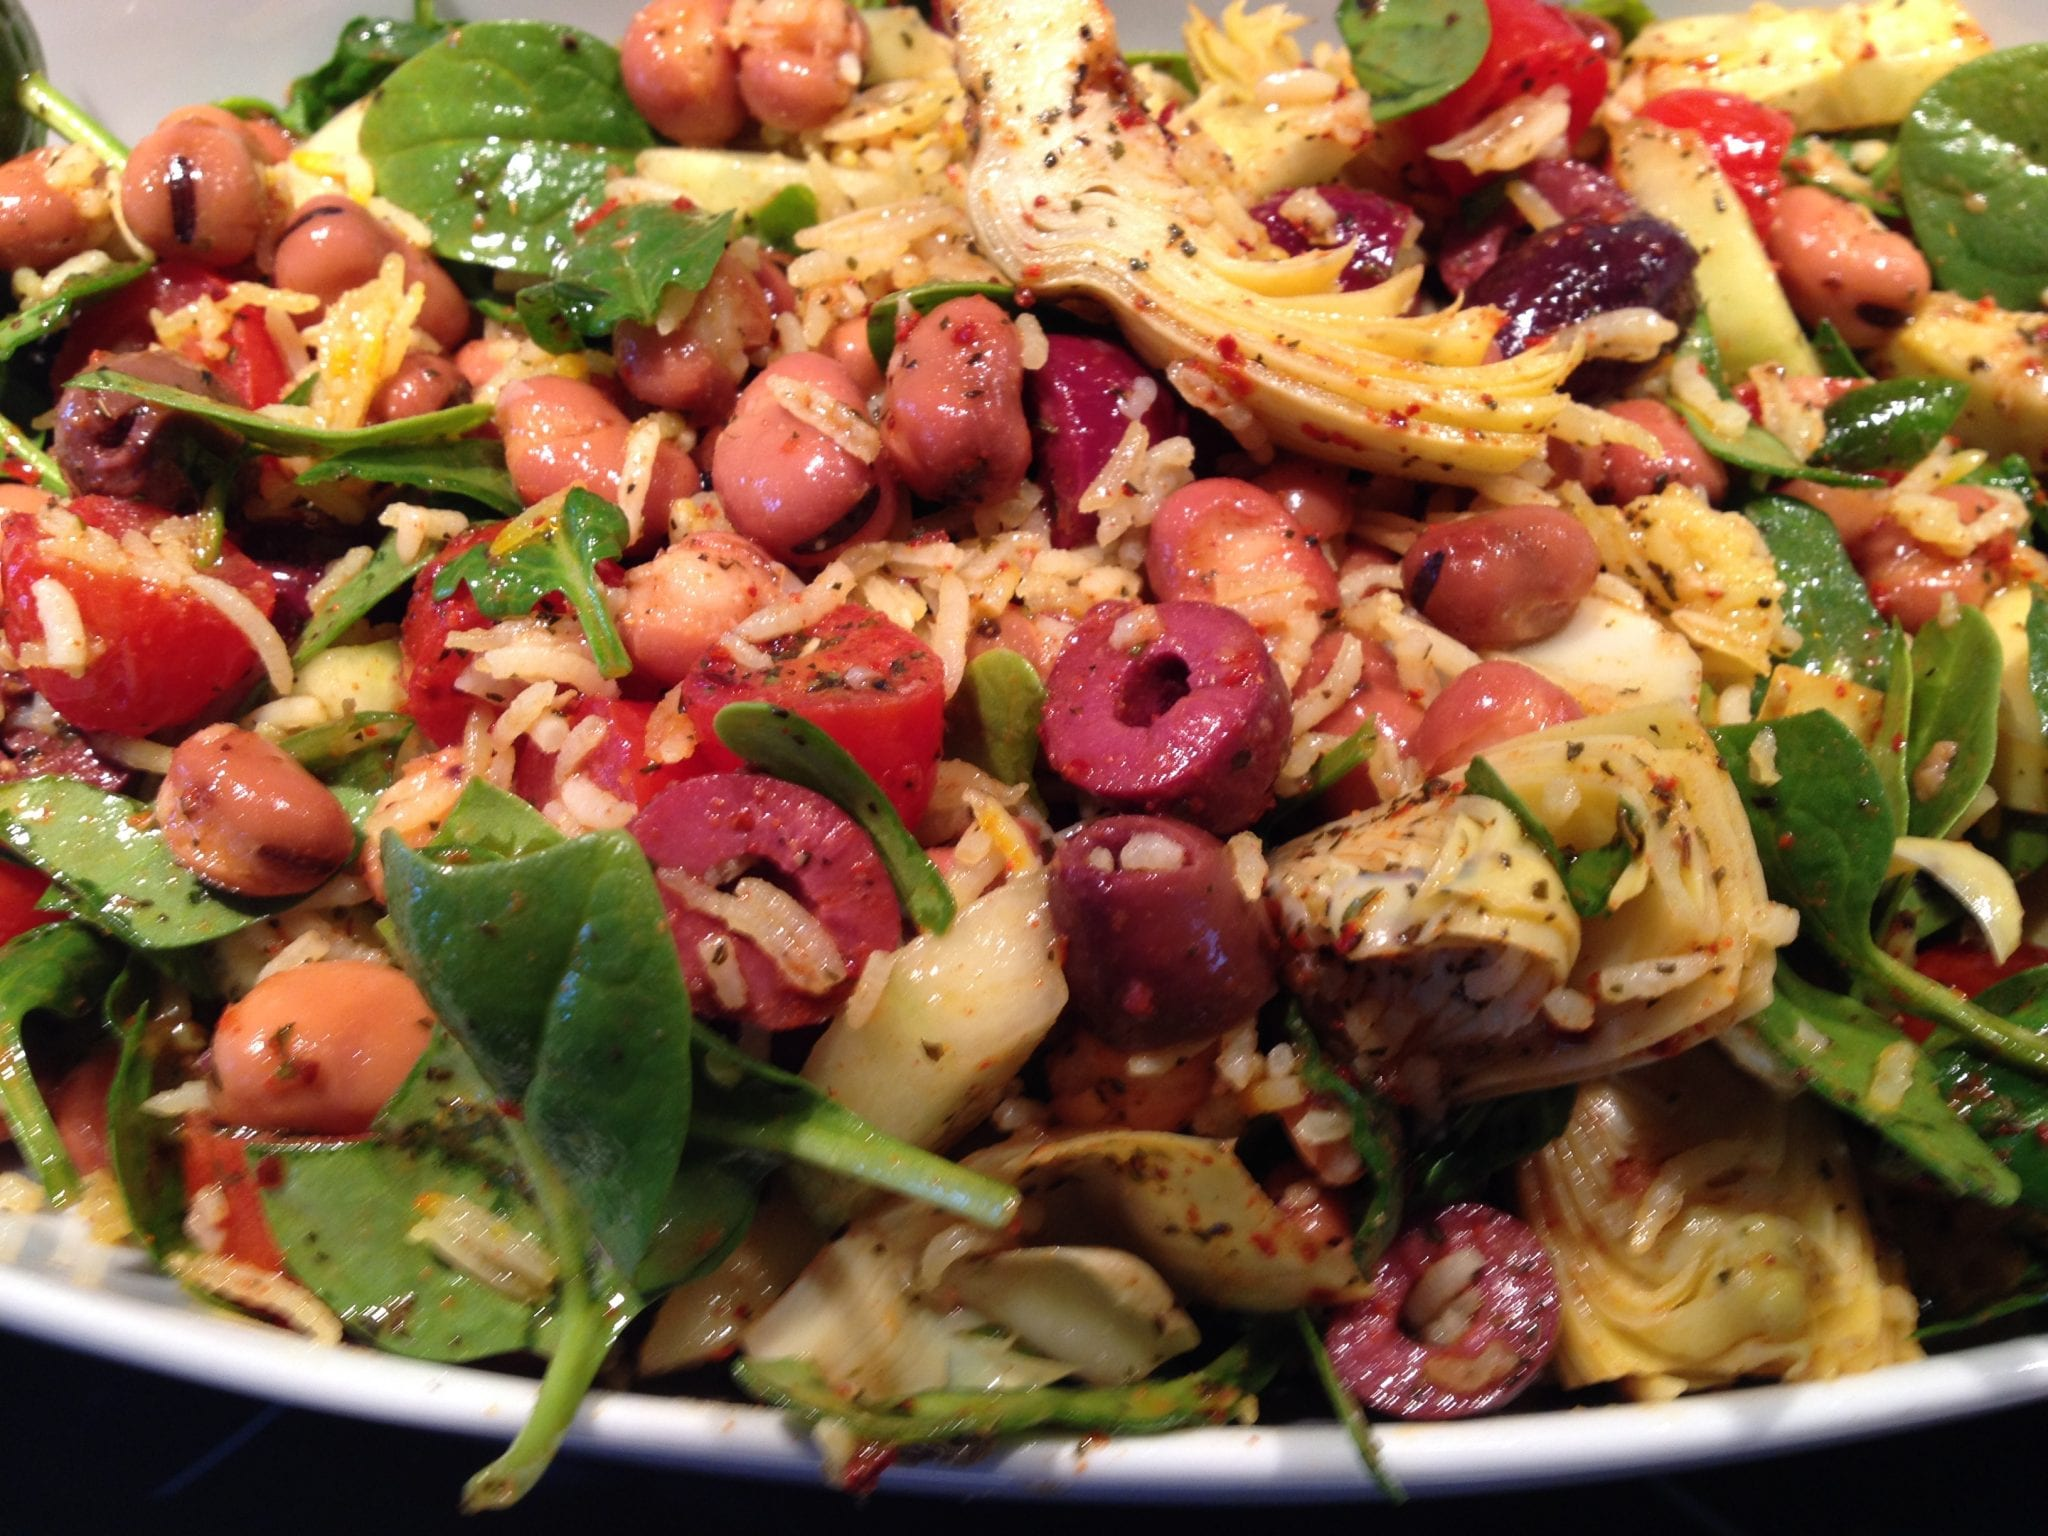 Harissa Rice and Fava Salad with Artichokes and Olives